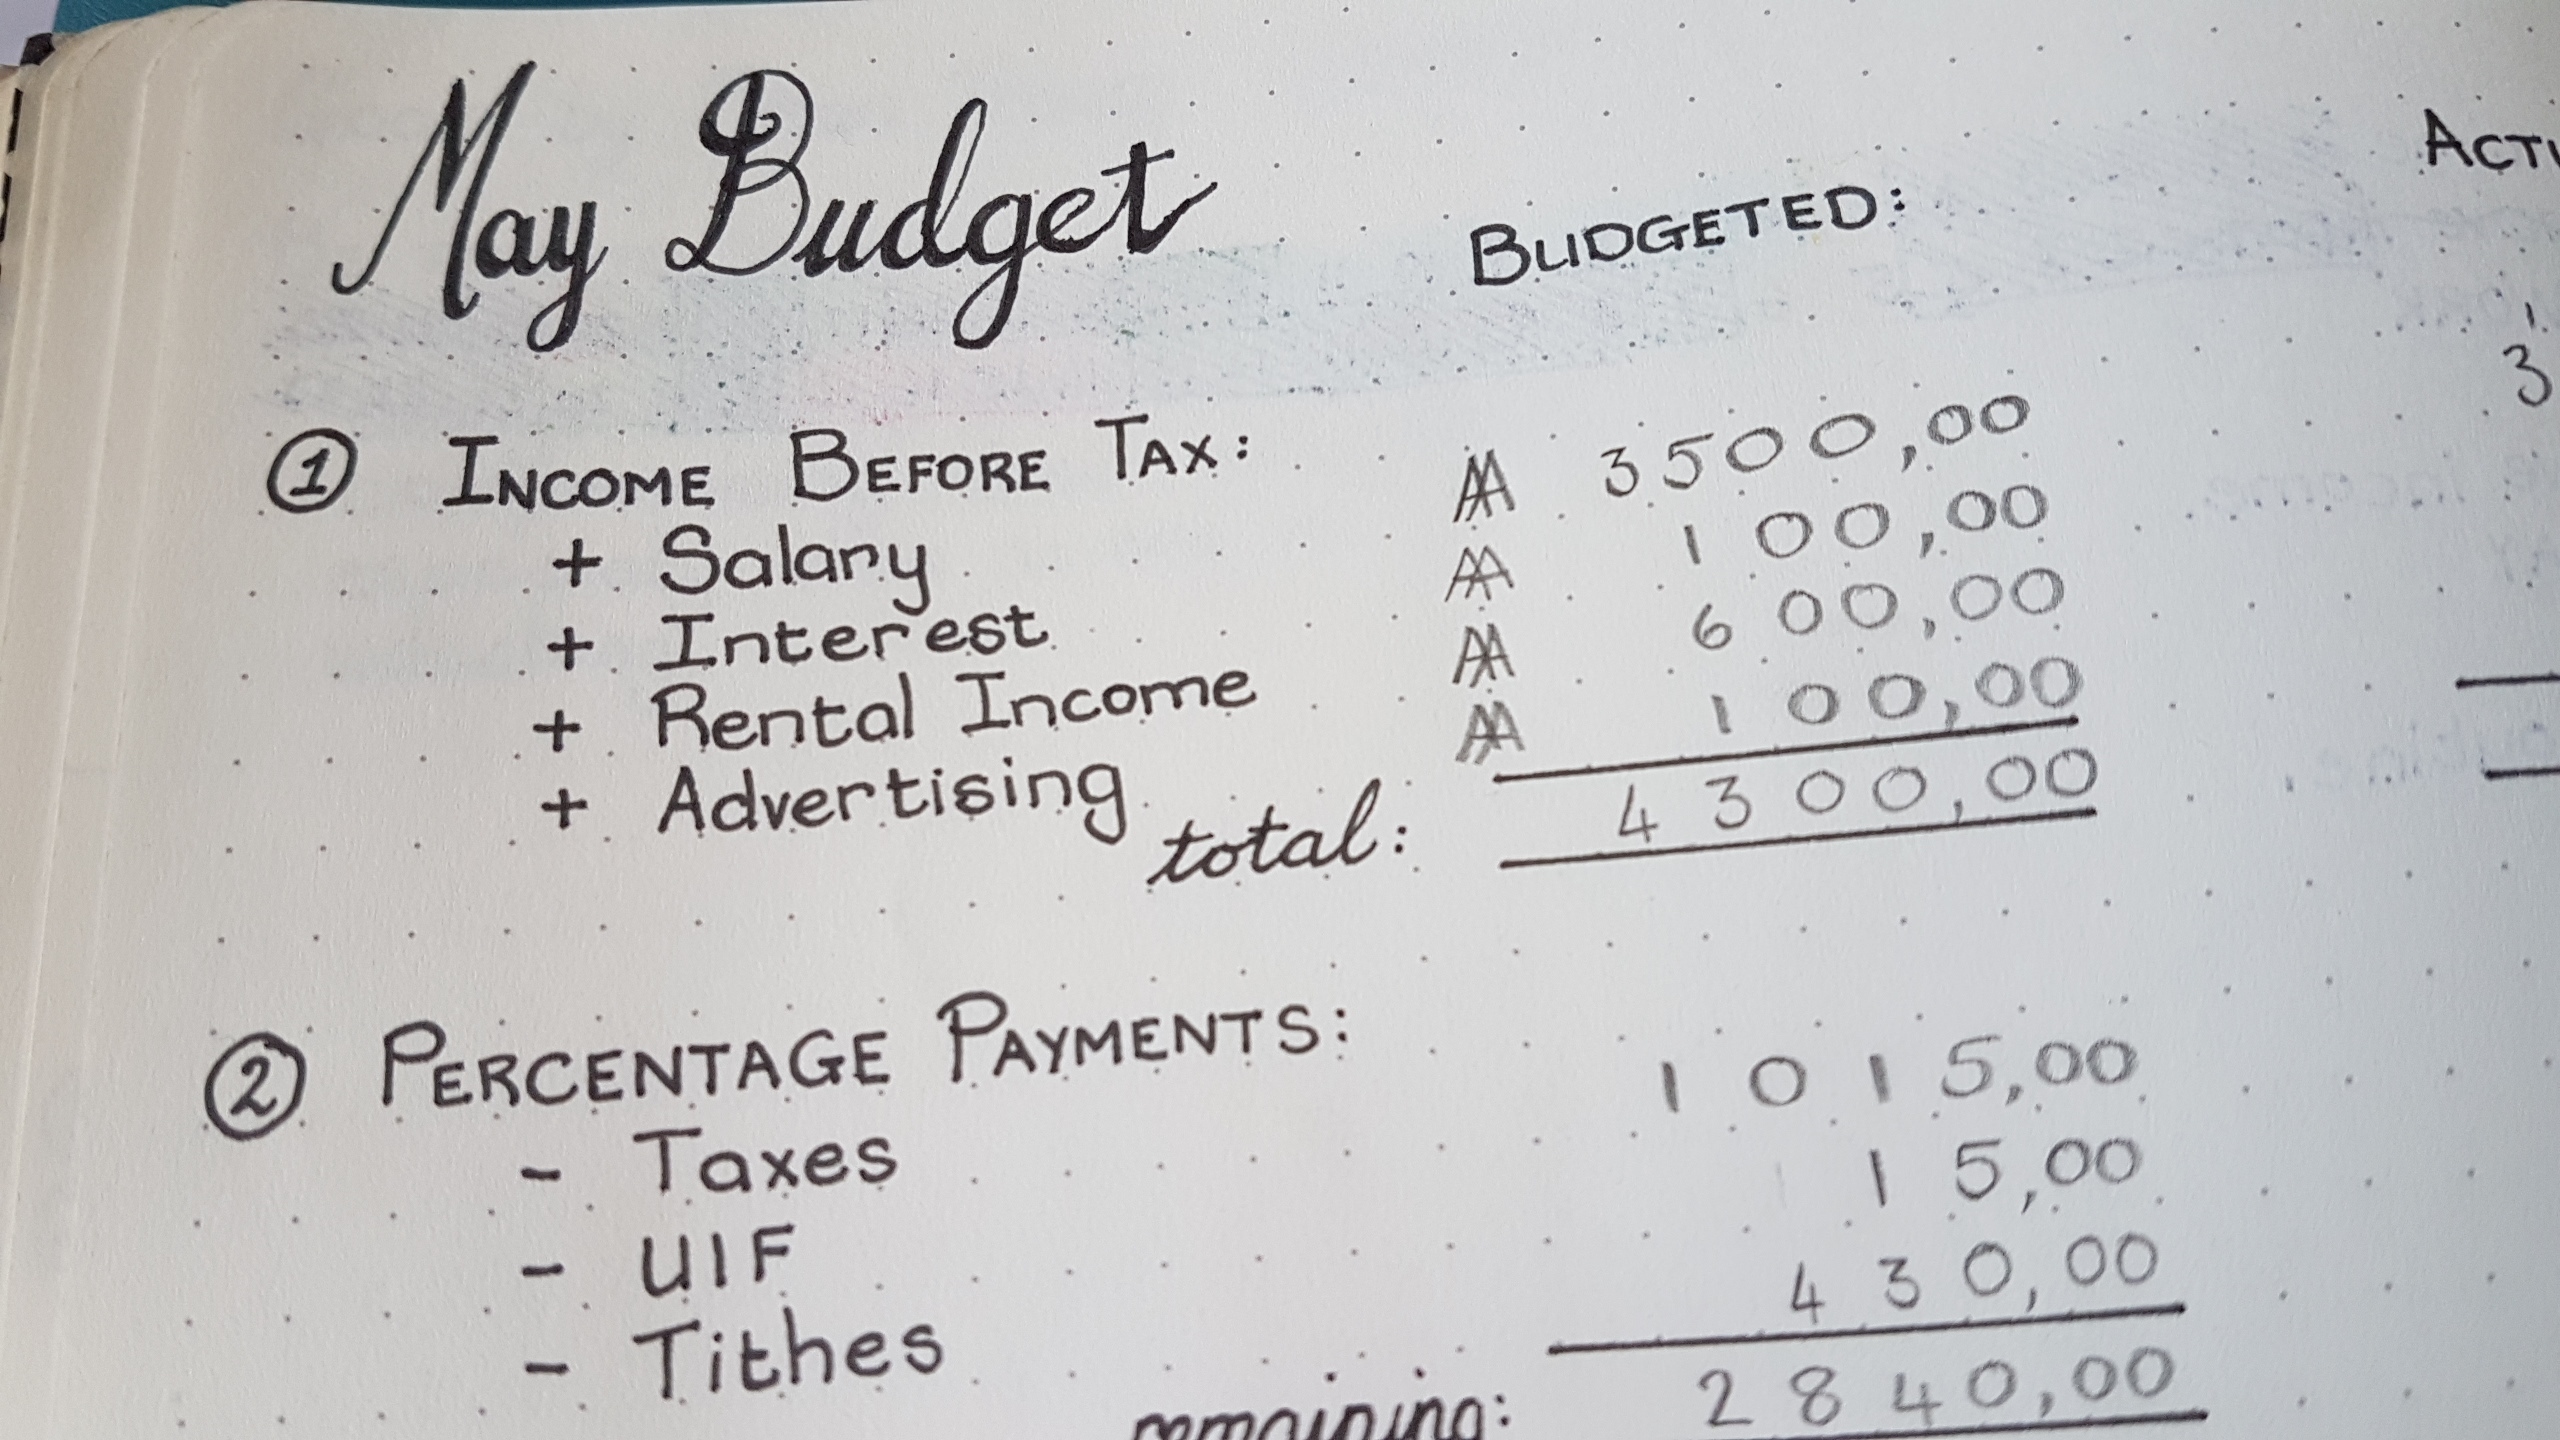 Personal Budget - Income before tax